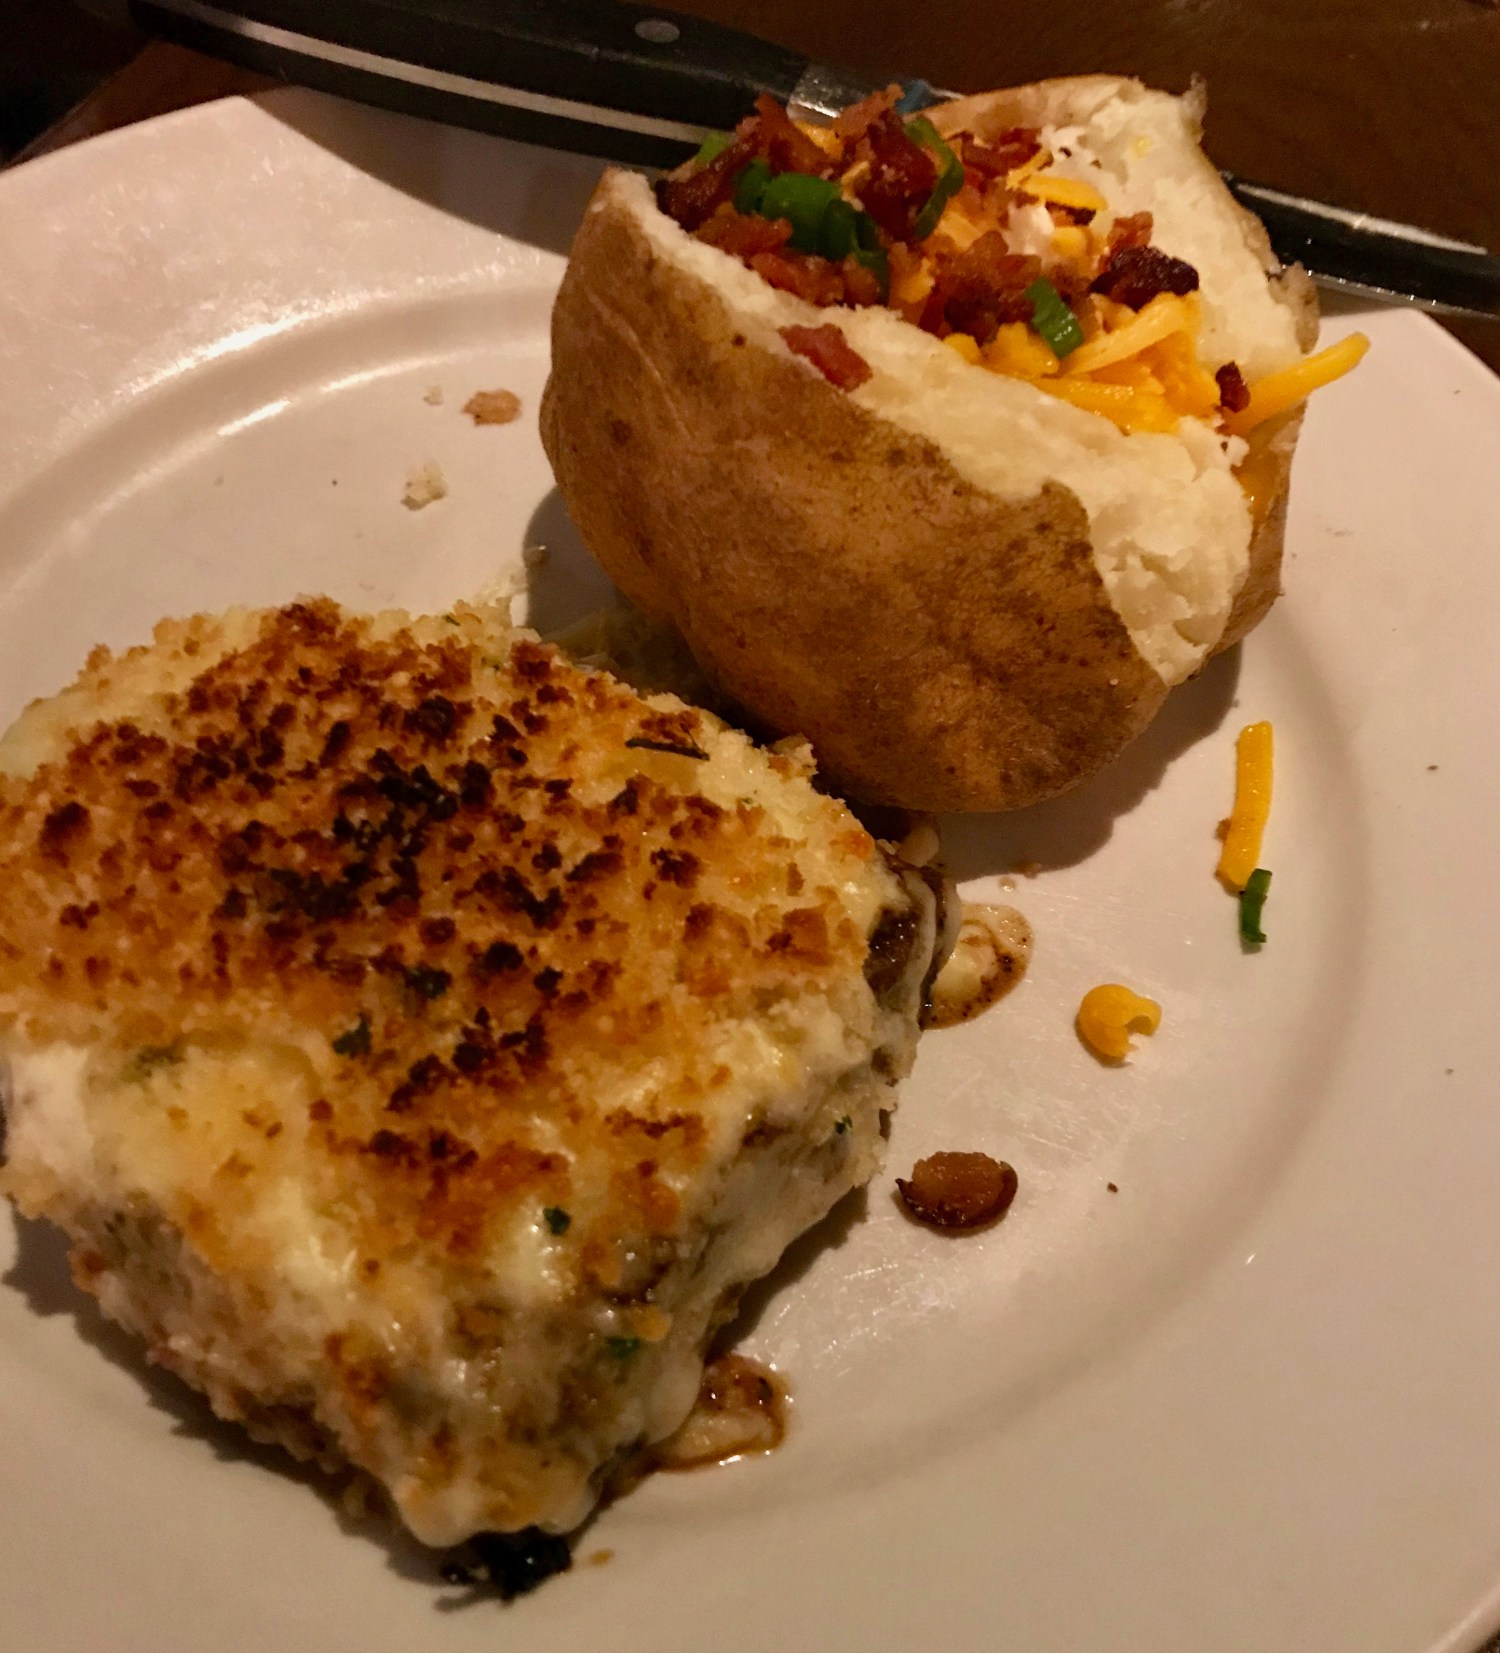 Parmesan Crusted Steak with loaded baked potato